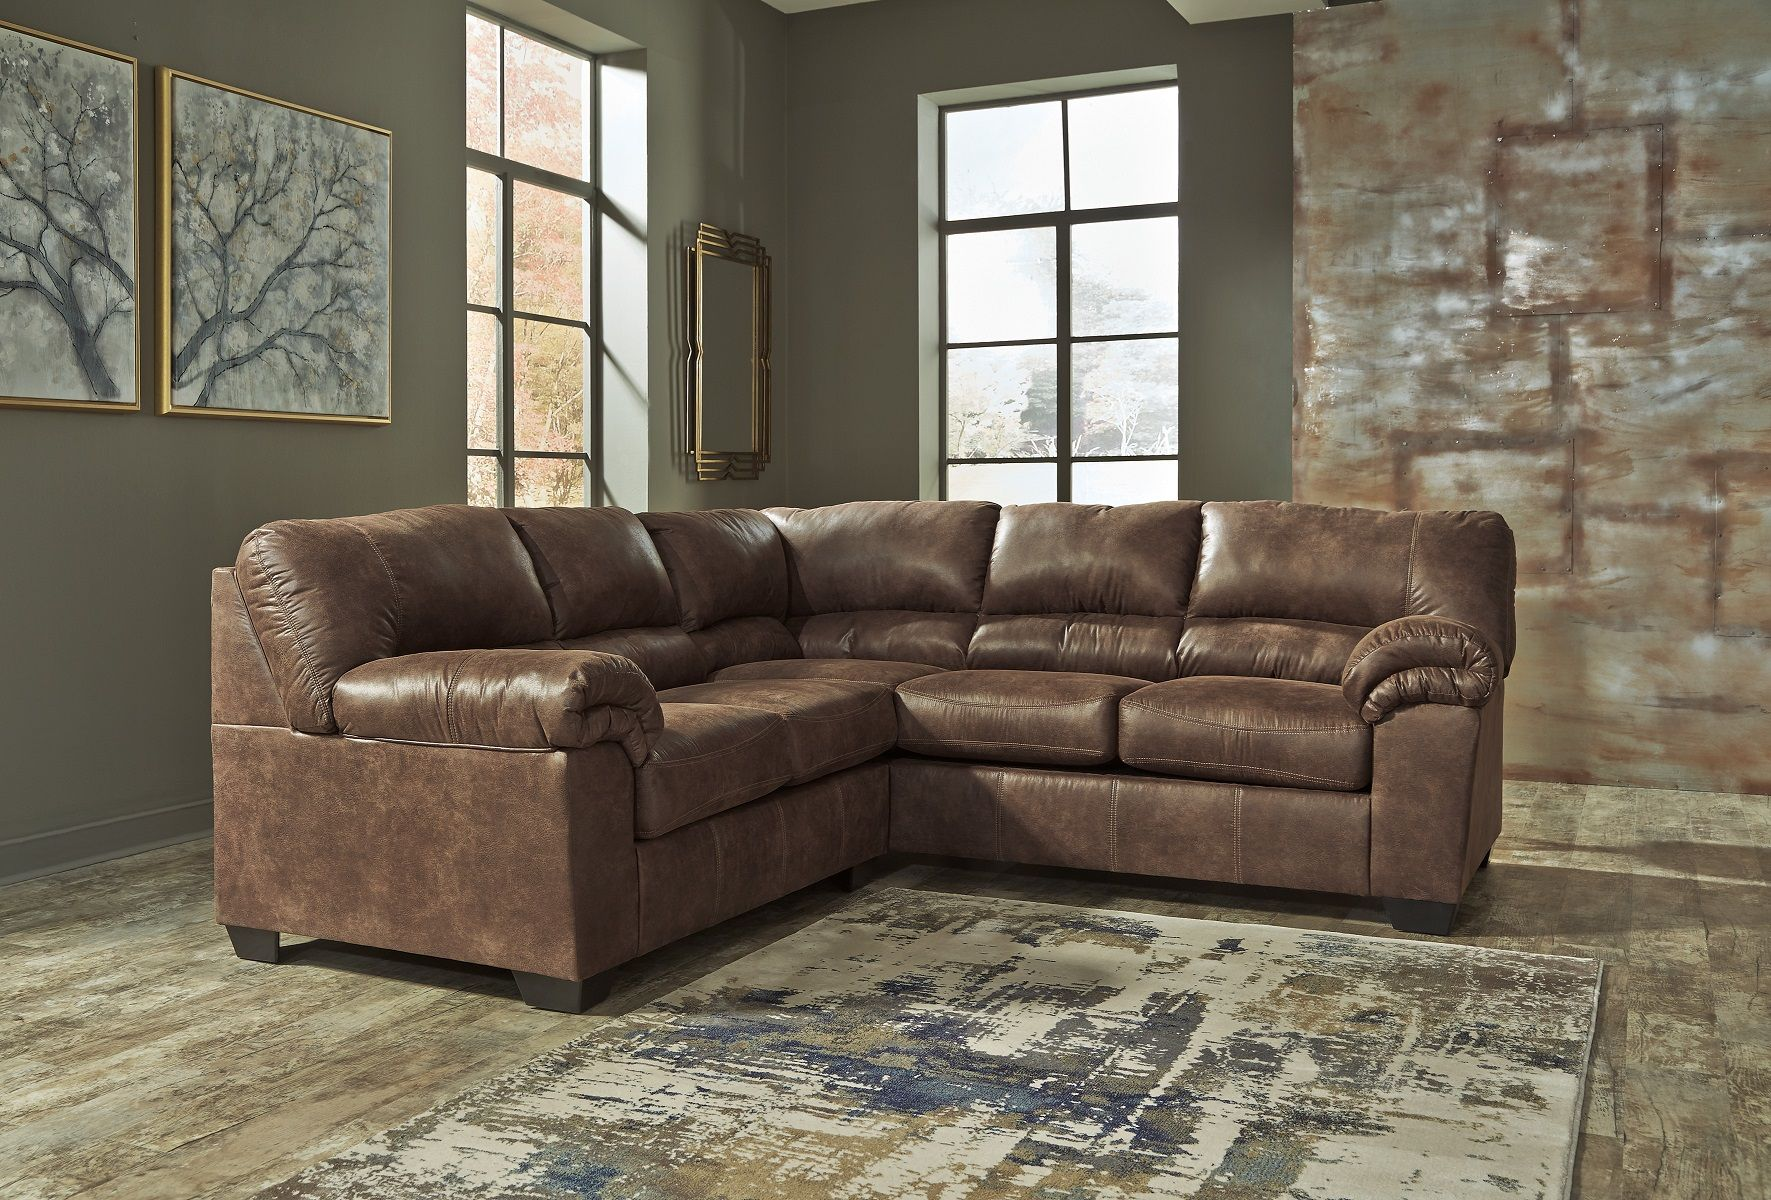 Lovely Bladen Ashley Sofa Sectional Contemporary Faux Leather Coffee Brown